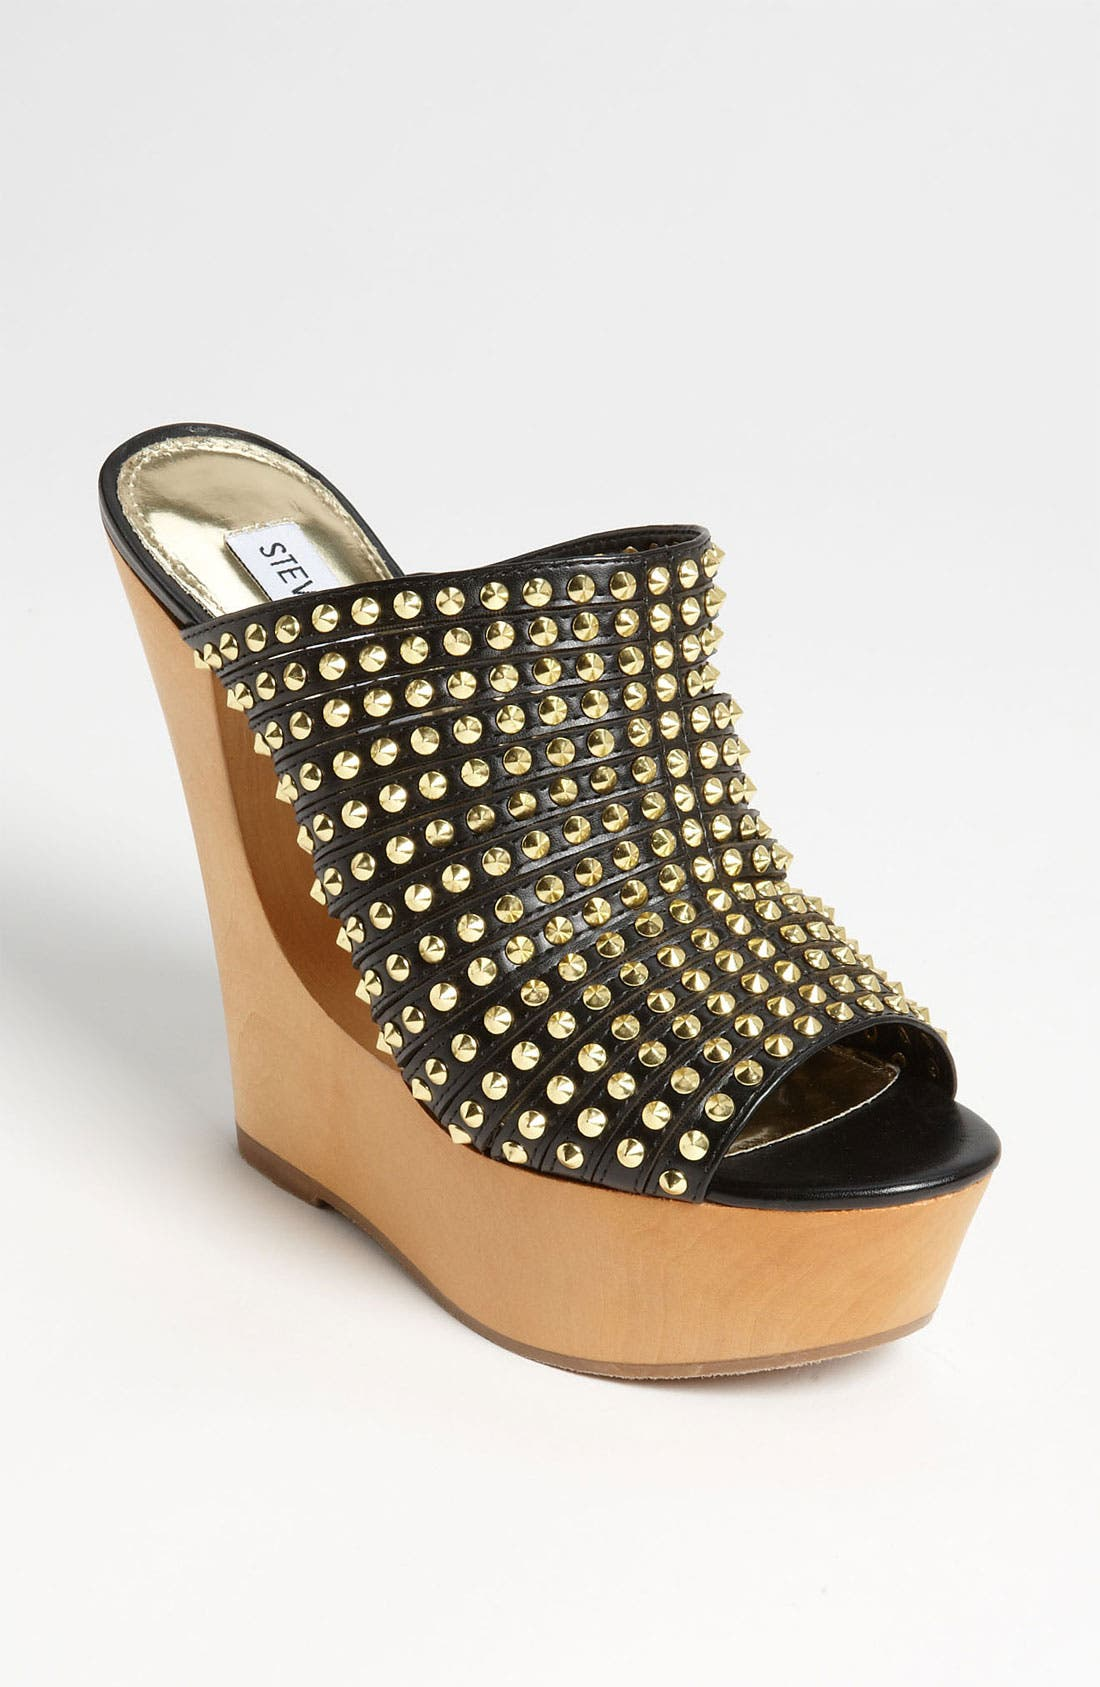 Main Image - Steve Madden 'Luccious' Wedge Sandal